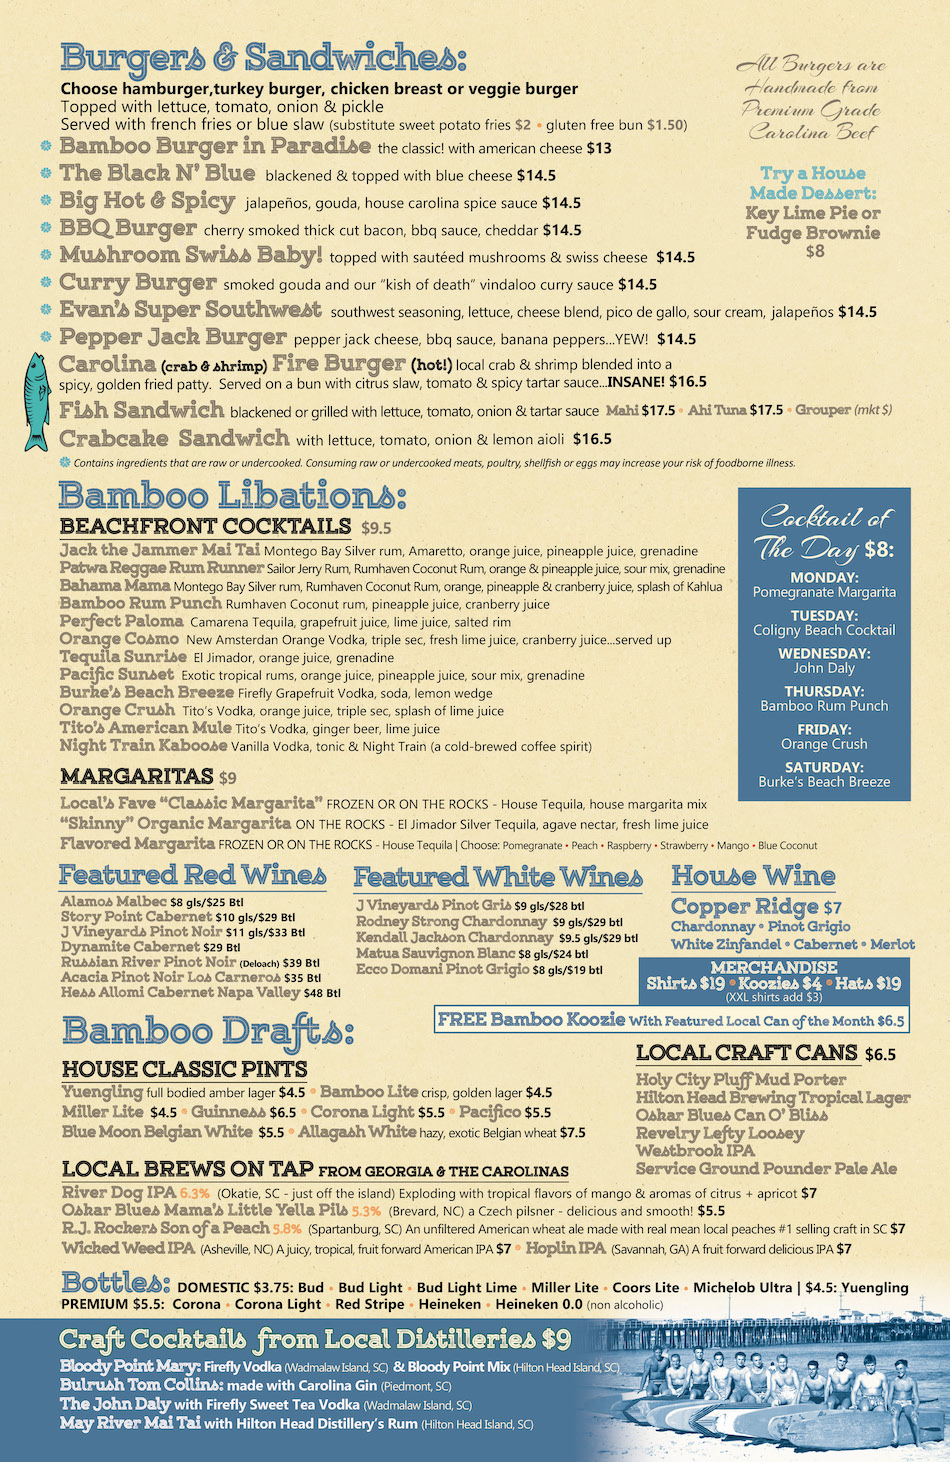 Big Bamboo Cafe HHI Dinner Menu Hilton Head